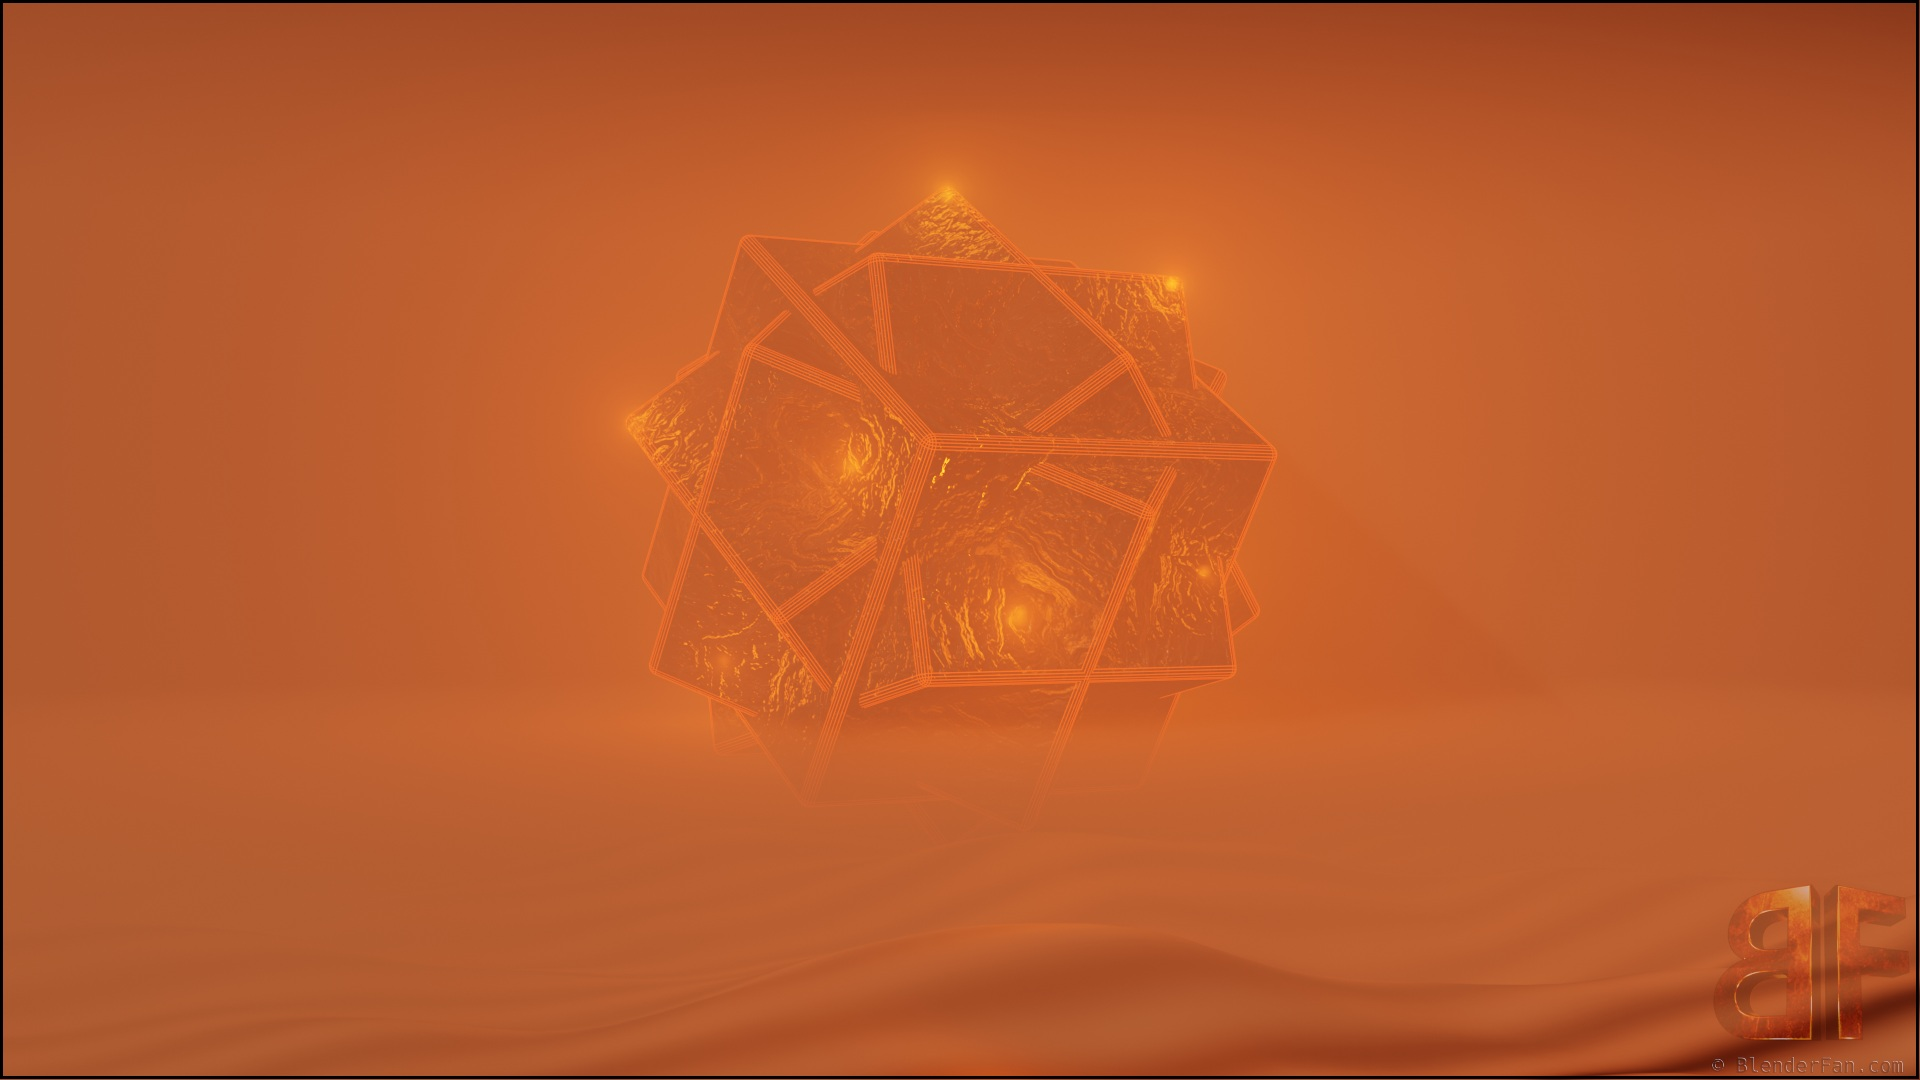 3d object in the fog